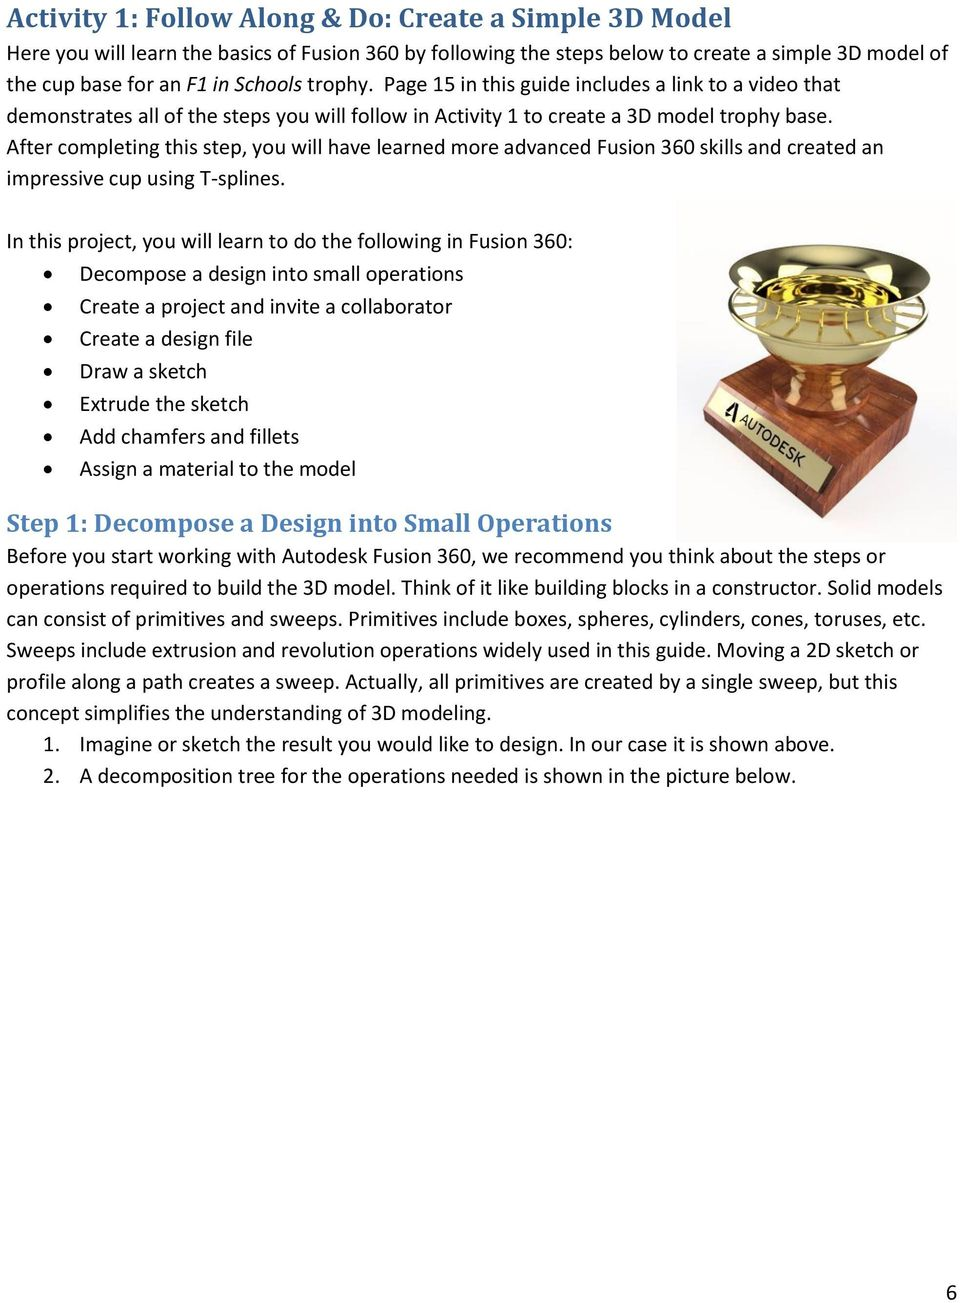 Autodesk Fusion 360 Badge Guide: Design an F1 in Schools Trophy - PDF